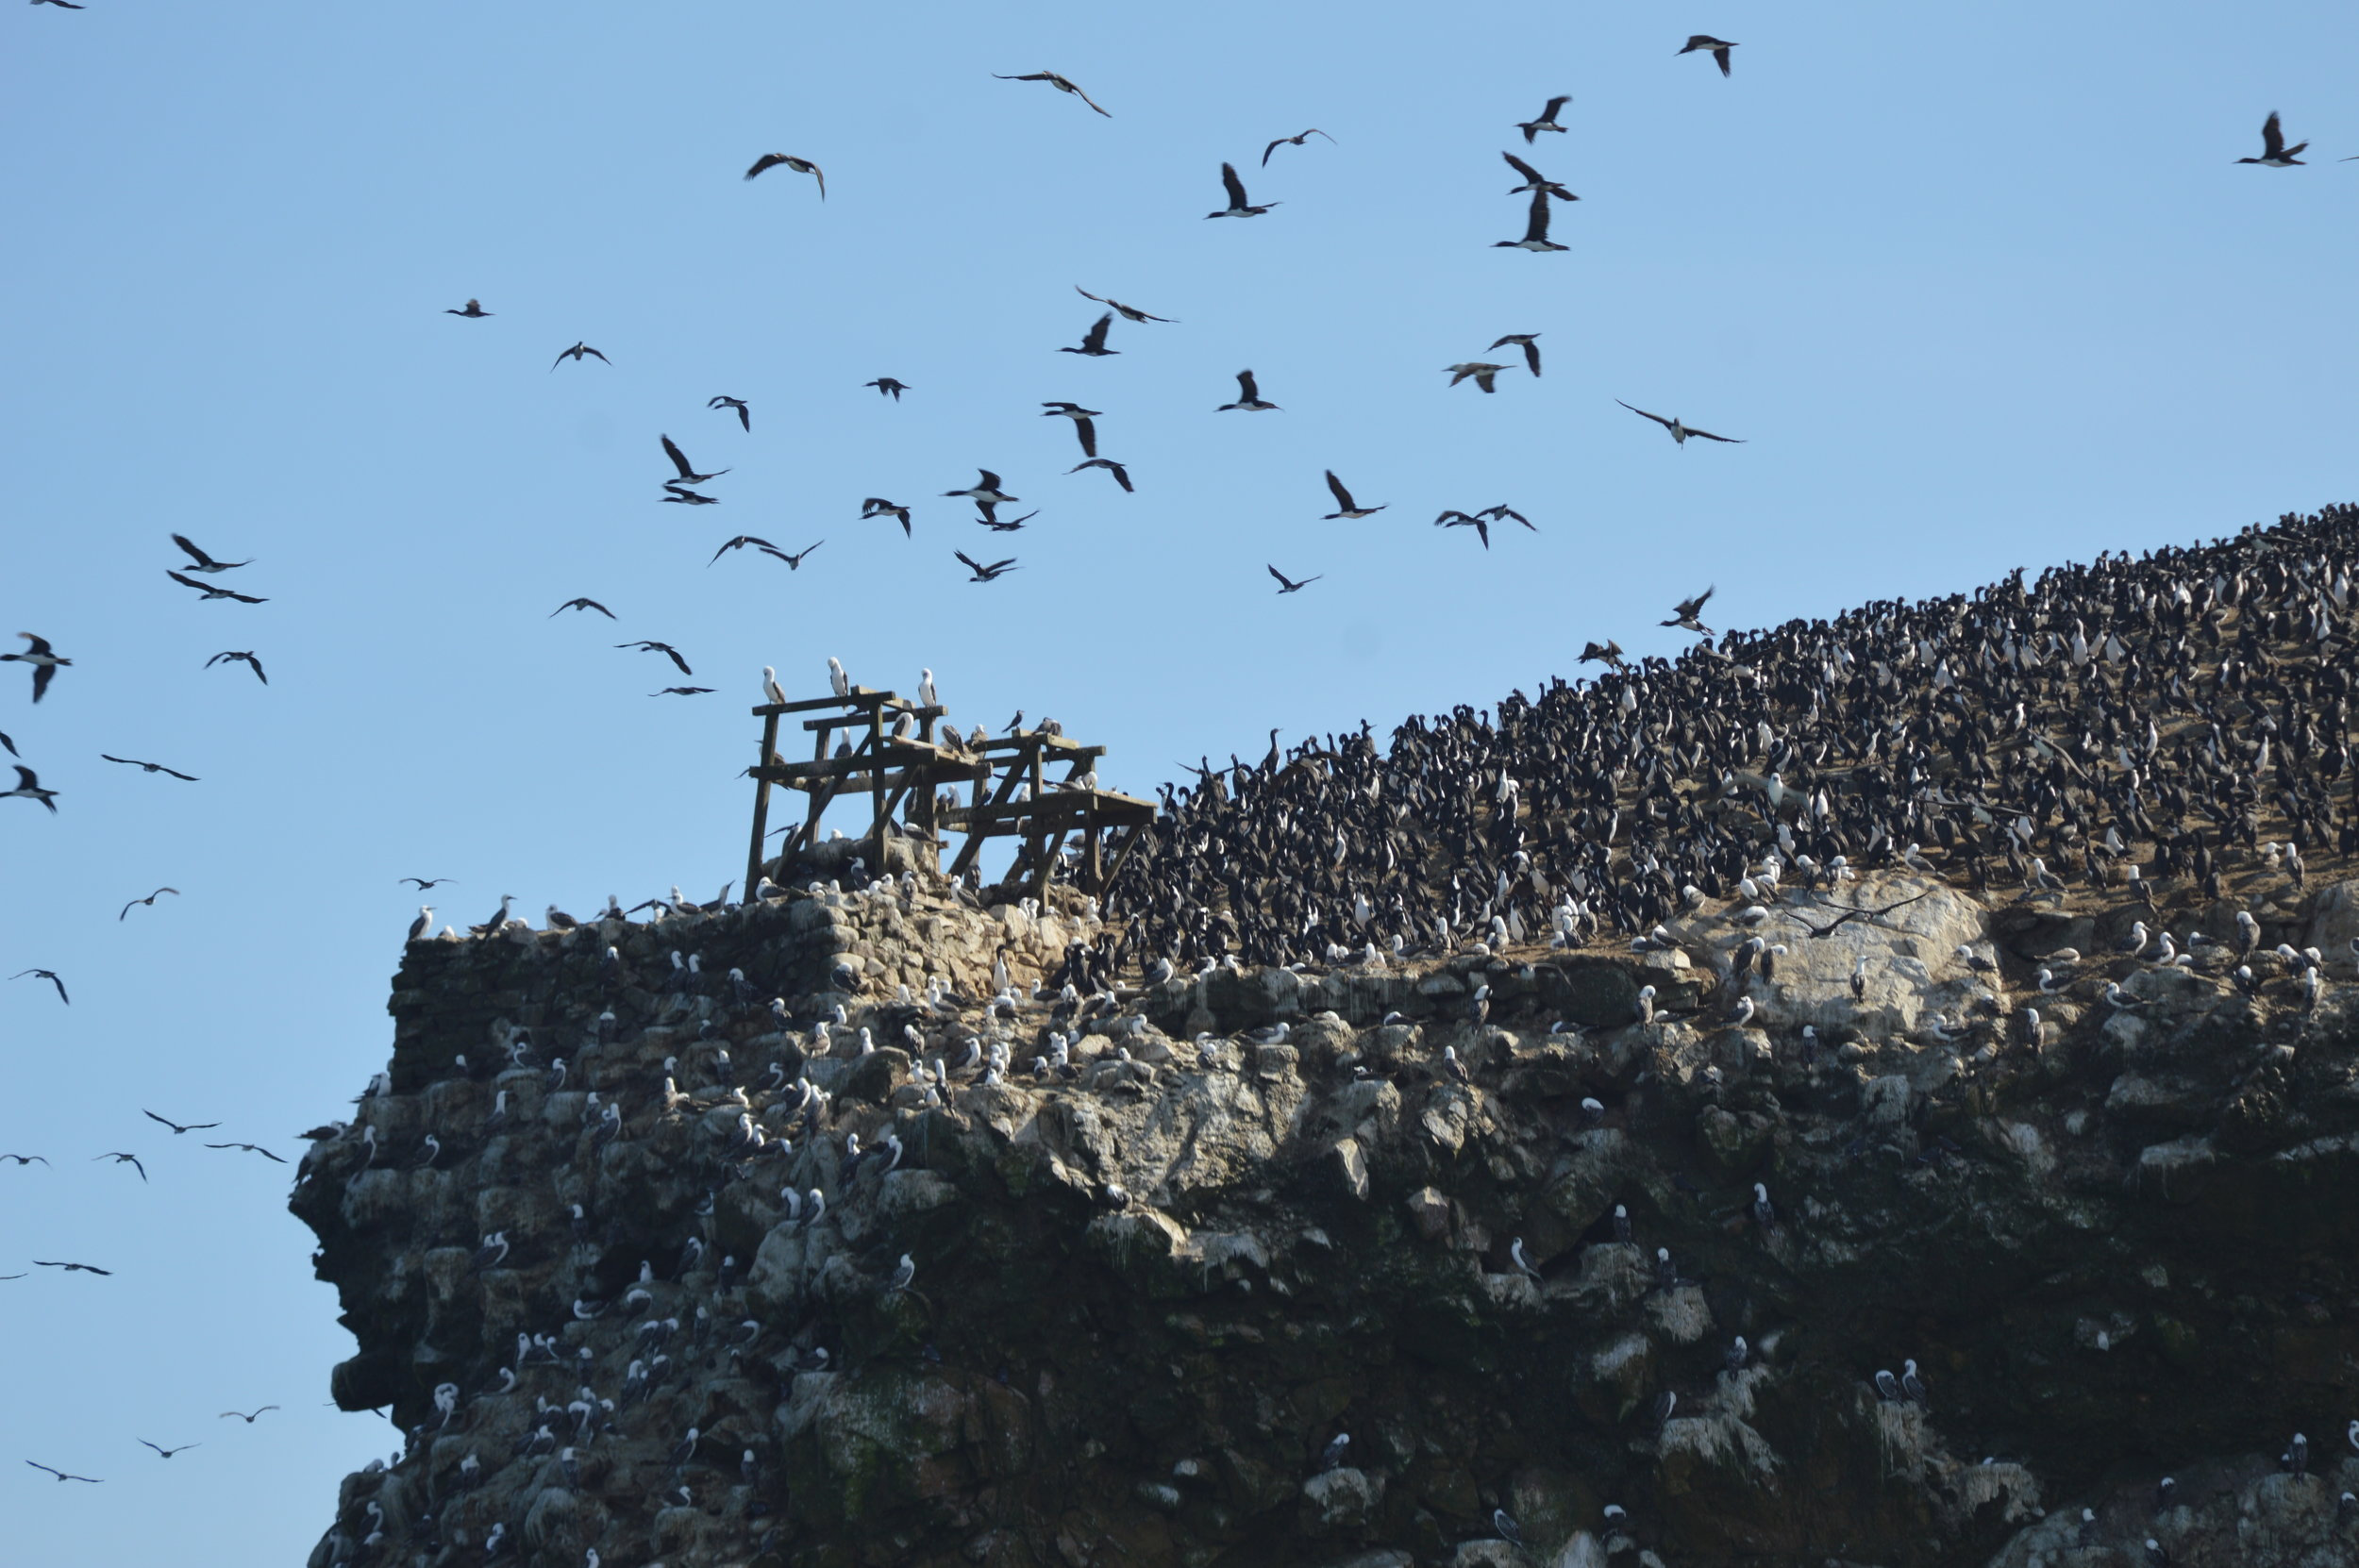 Millions of birds on this large rock